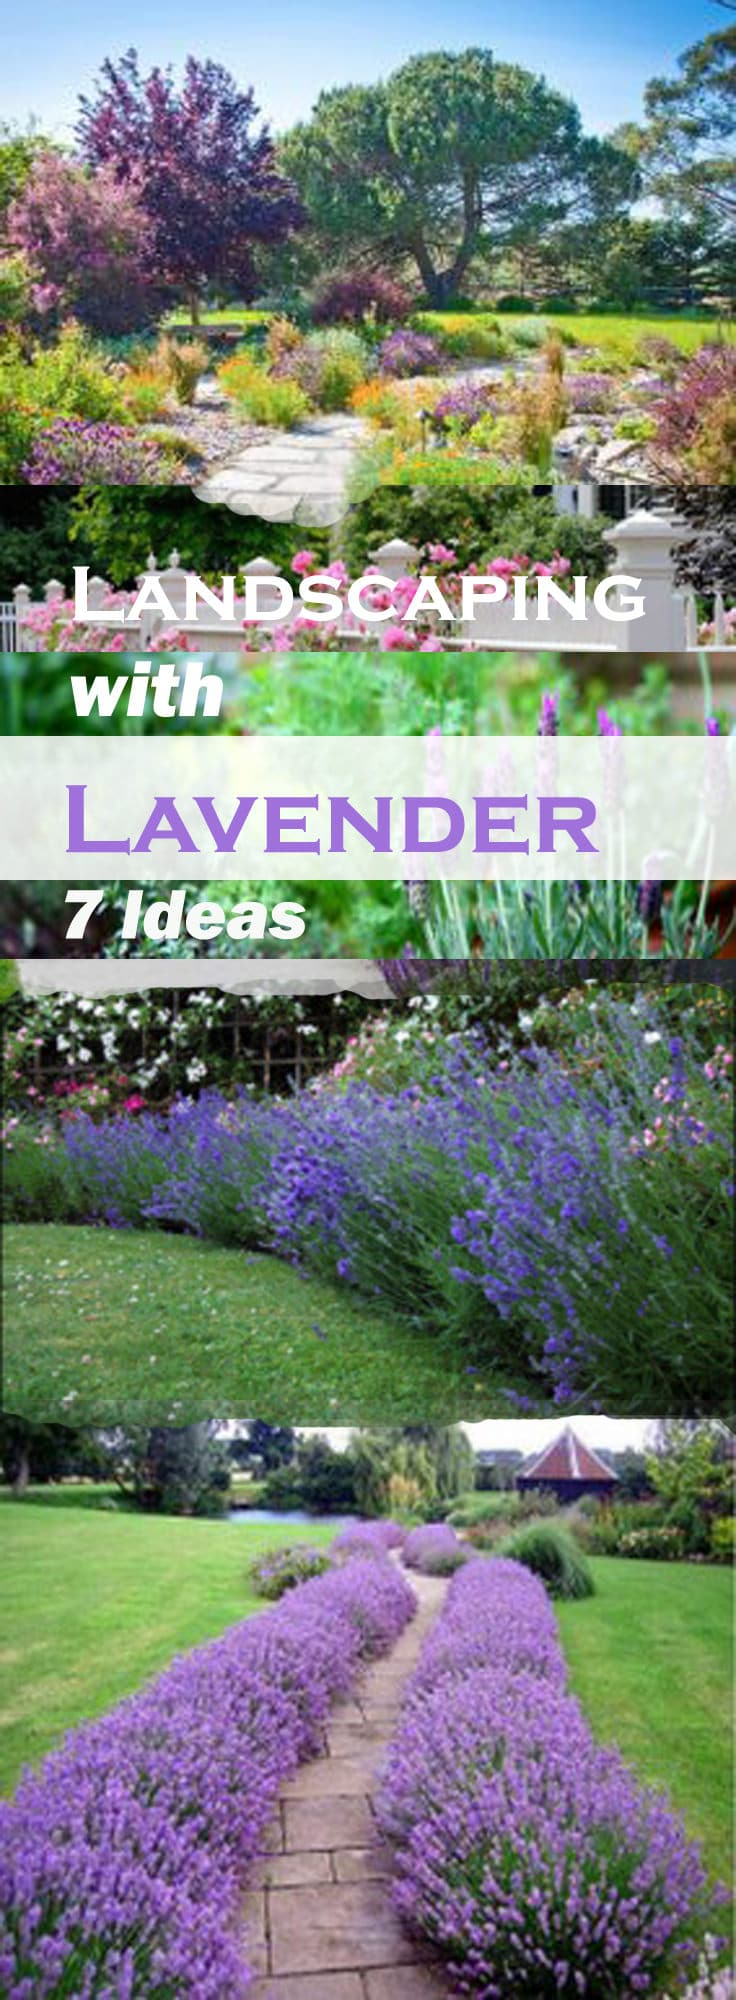 landscaping with lavender is easy and of low maintenance as this herb is available in so